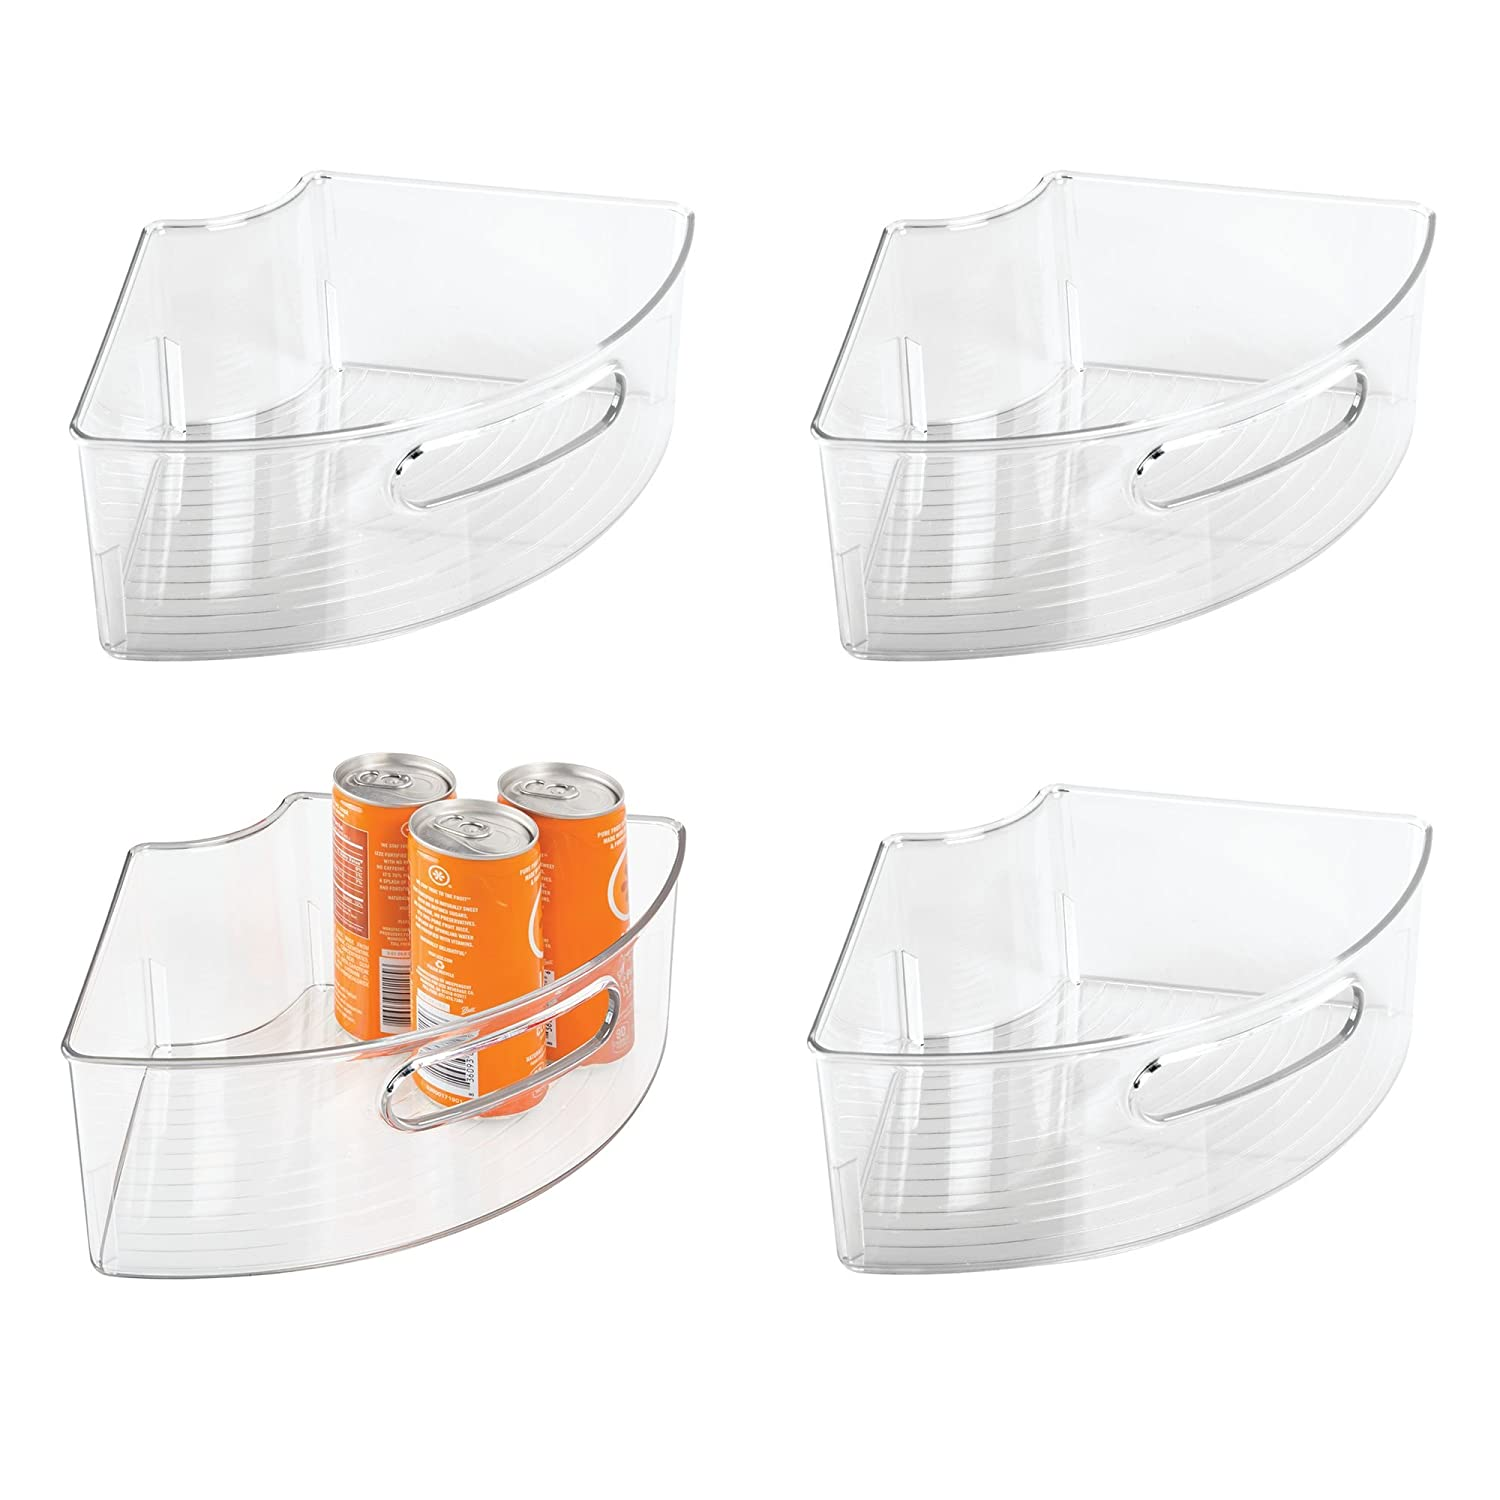 InterDesign Kitchen Binz Lazy Susan Plastic Storage Container with Handle for Organizing Pantry Cabinets – ¼ Small Wedge, Pack of 4, Clear